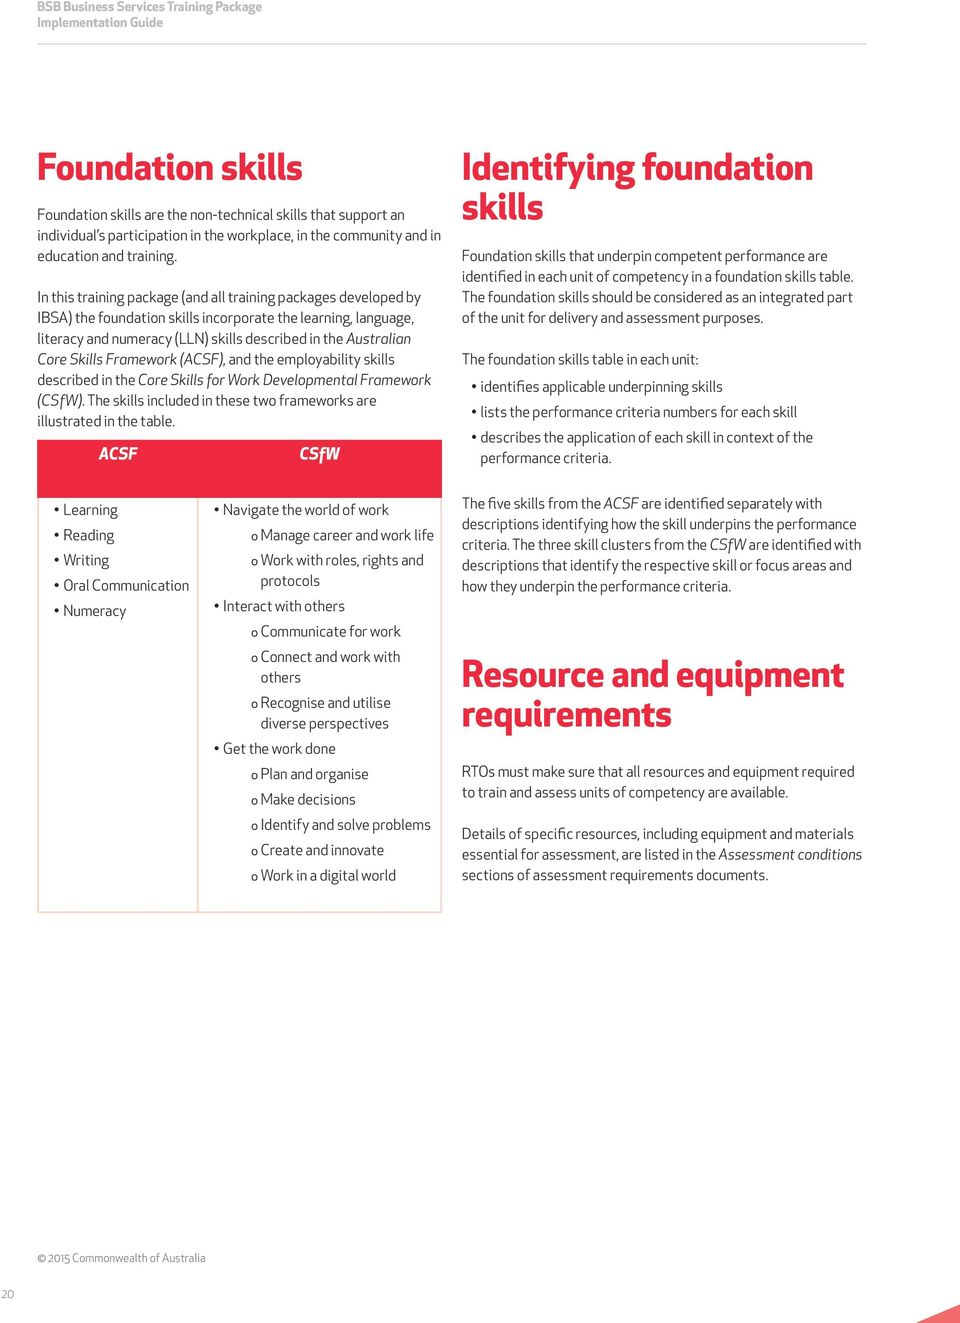 In this training package (and all training packages developed by IBSA) the foundation skills incorporate the learning, language, literacy and numeracy (LLN) skills described in the Australian Core